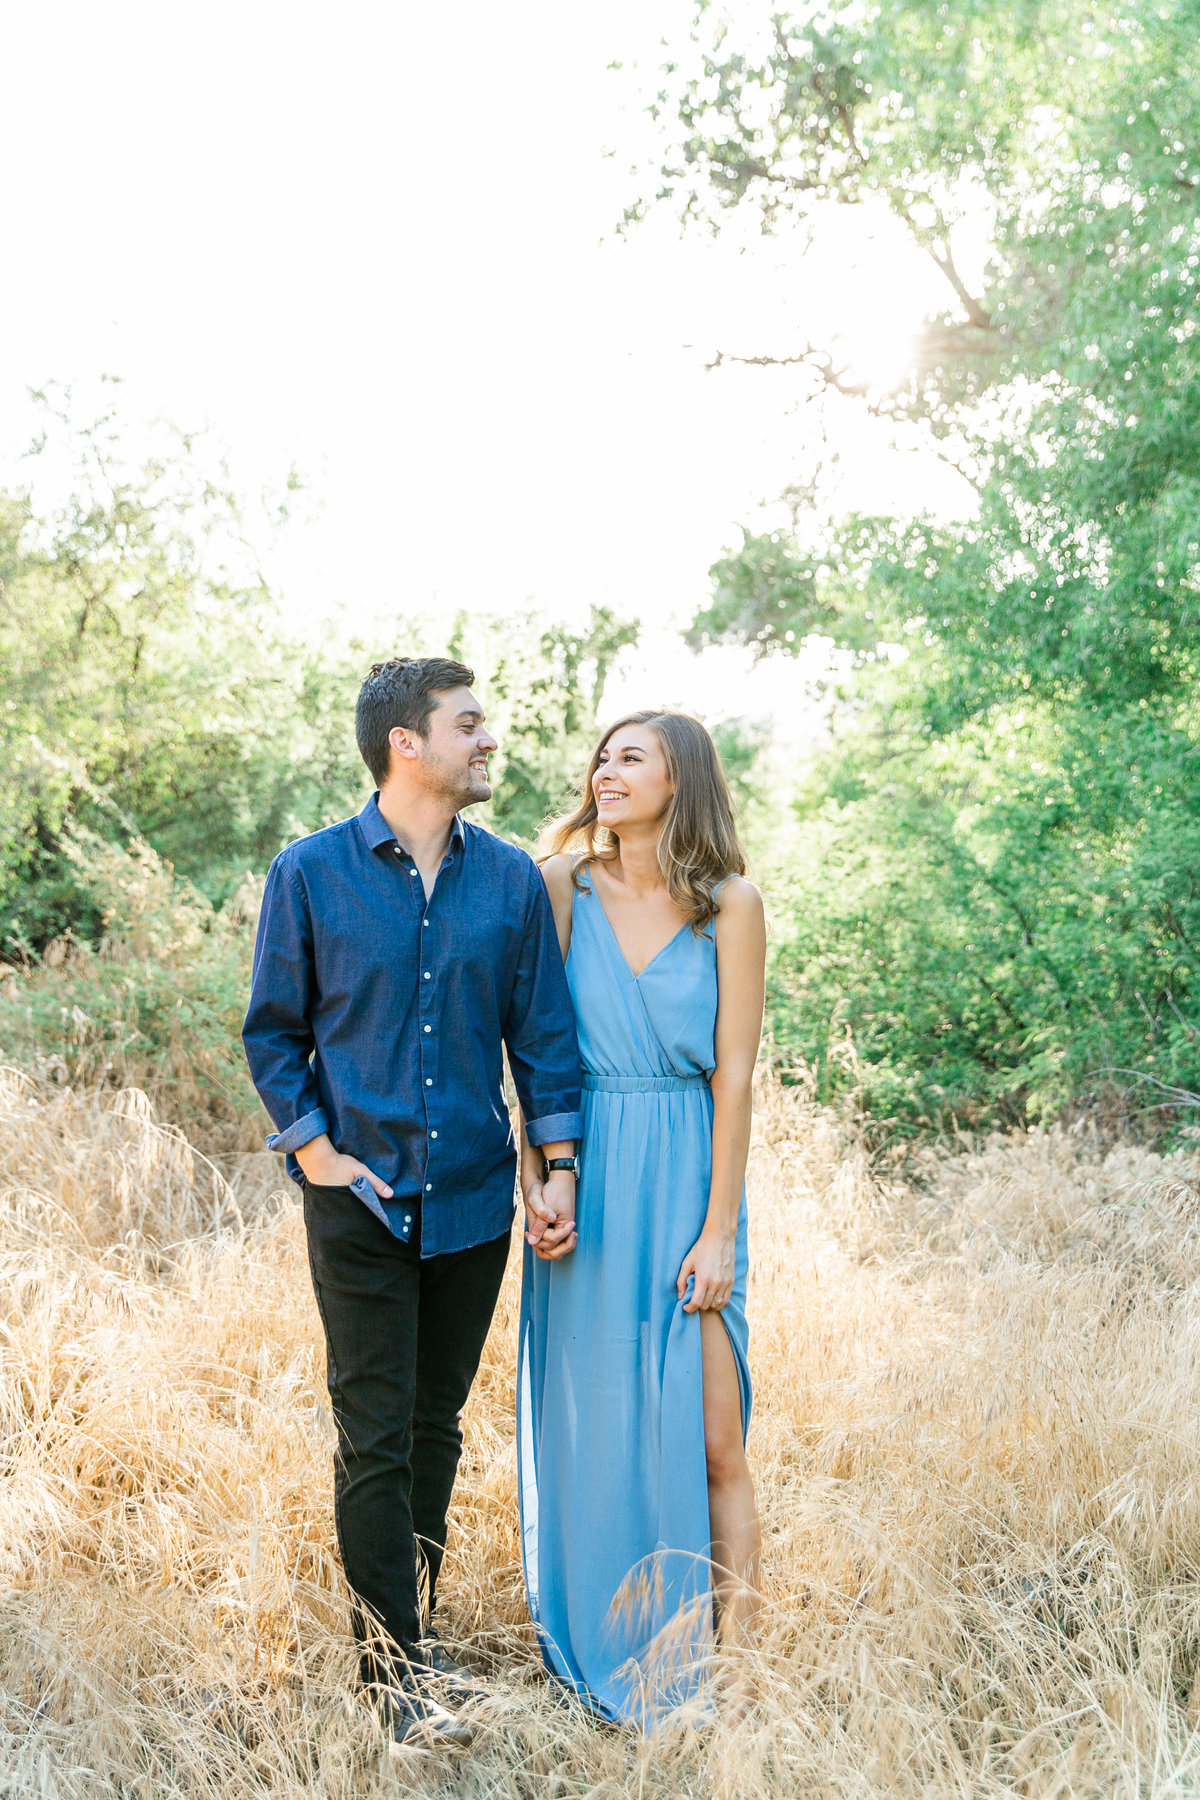 Karlie Colleen Photography - Arizona Desert Engagement - Brynne & Josh -58